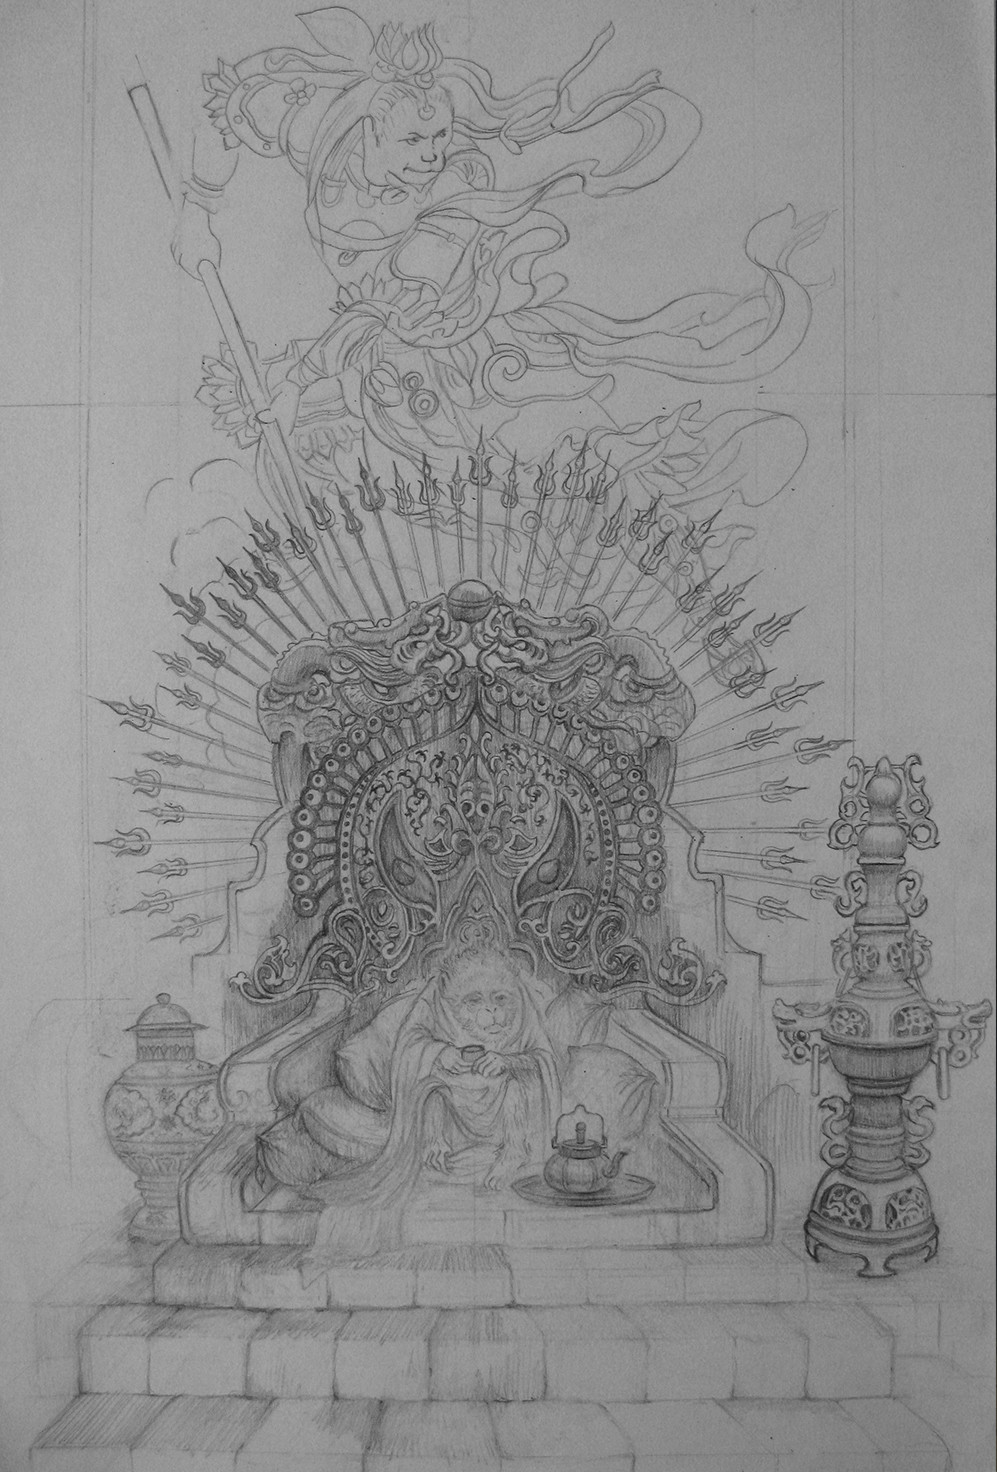 The initial idea pencil sketch